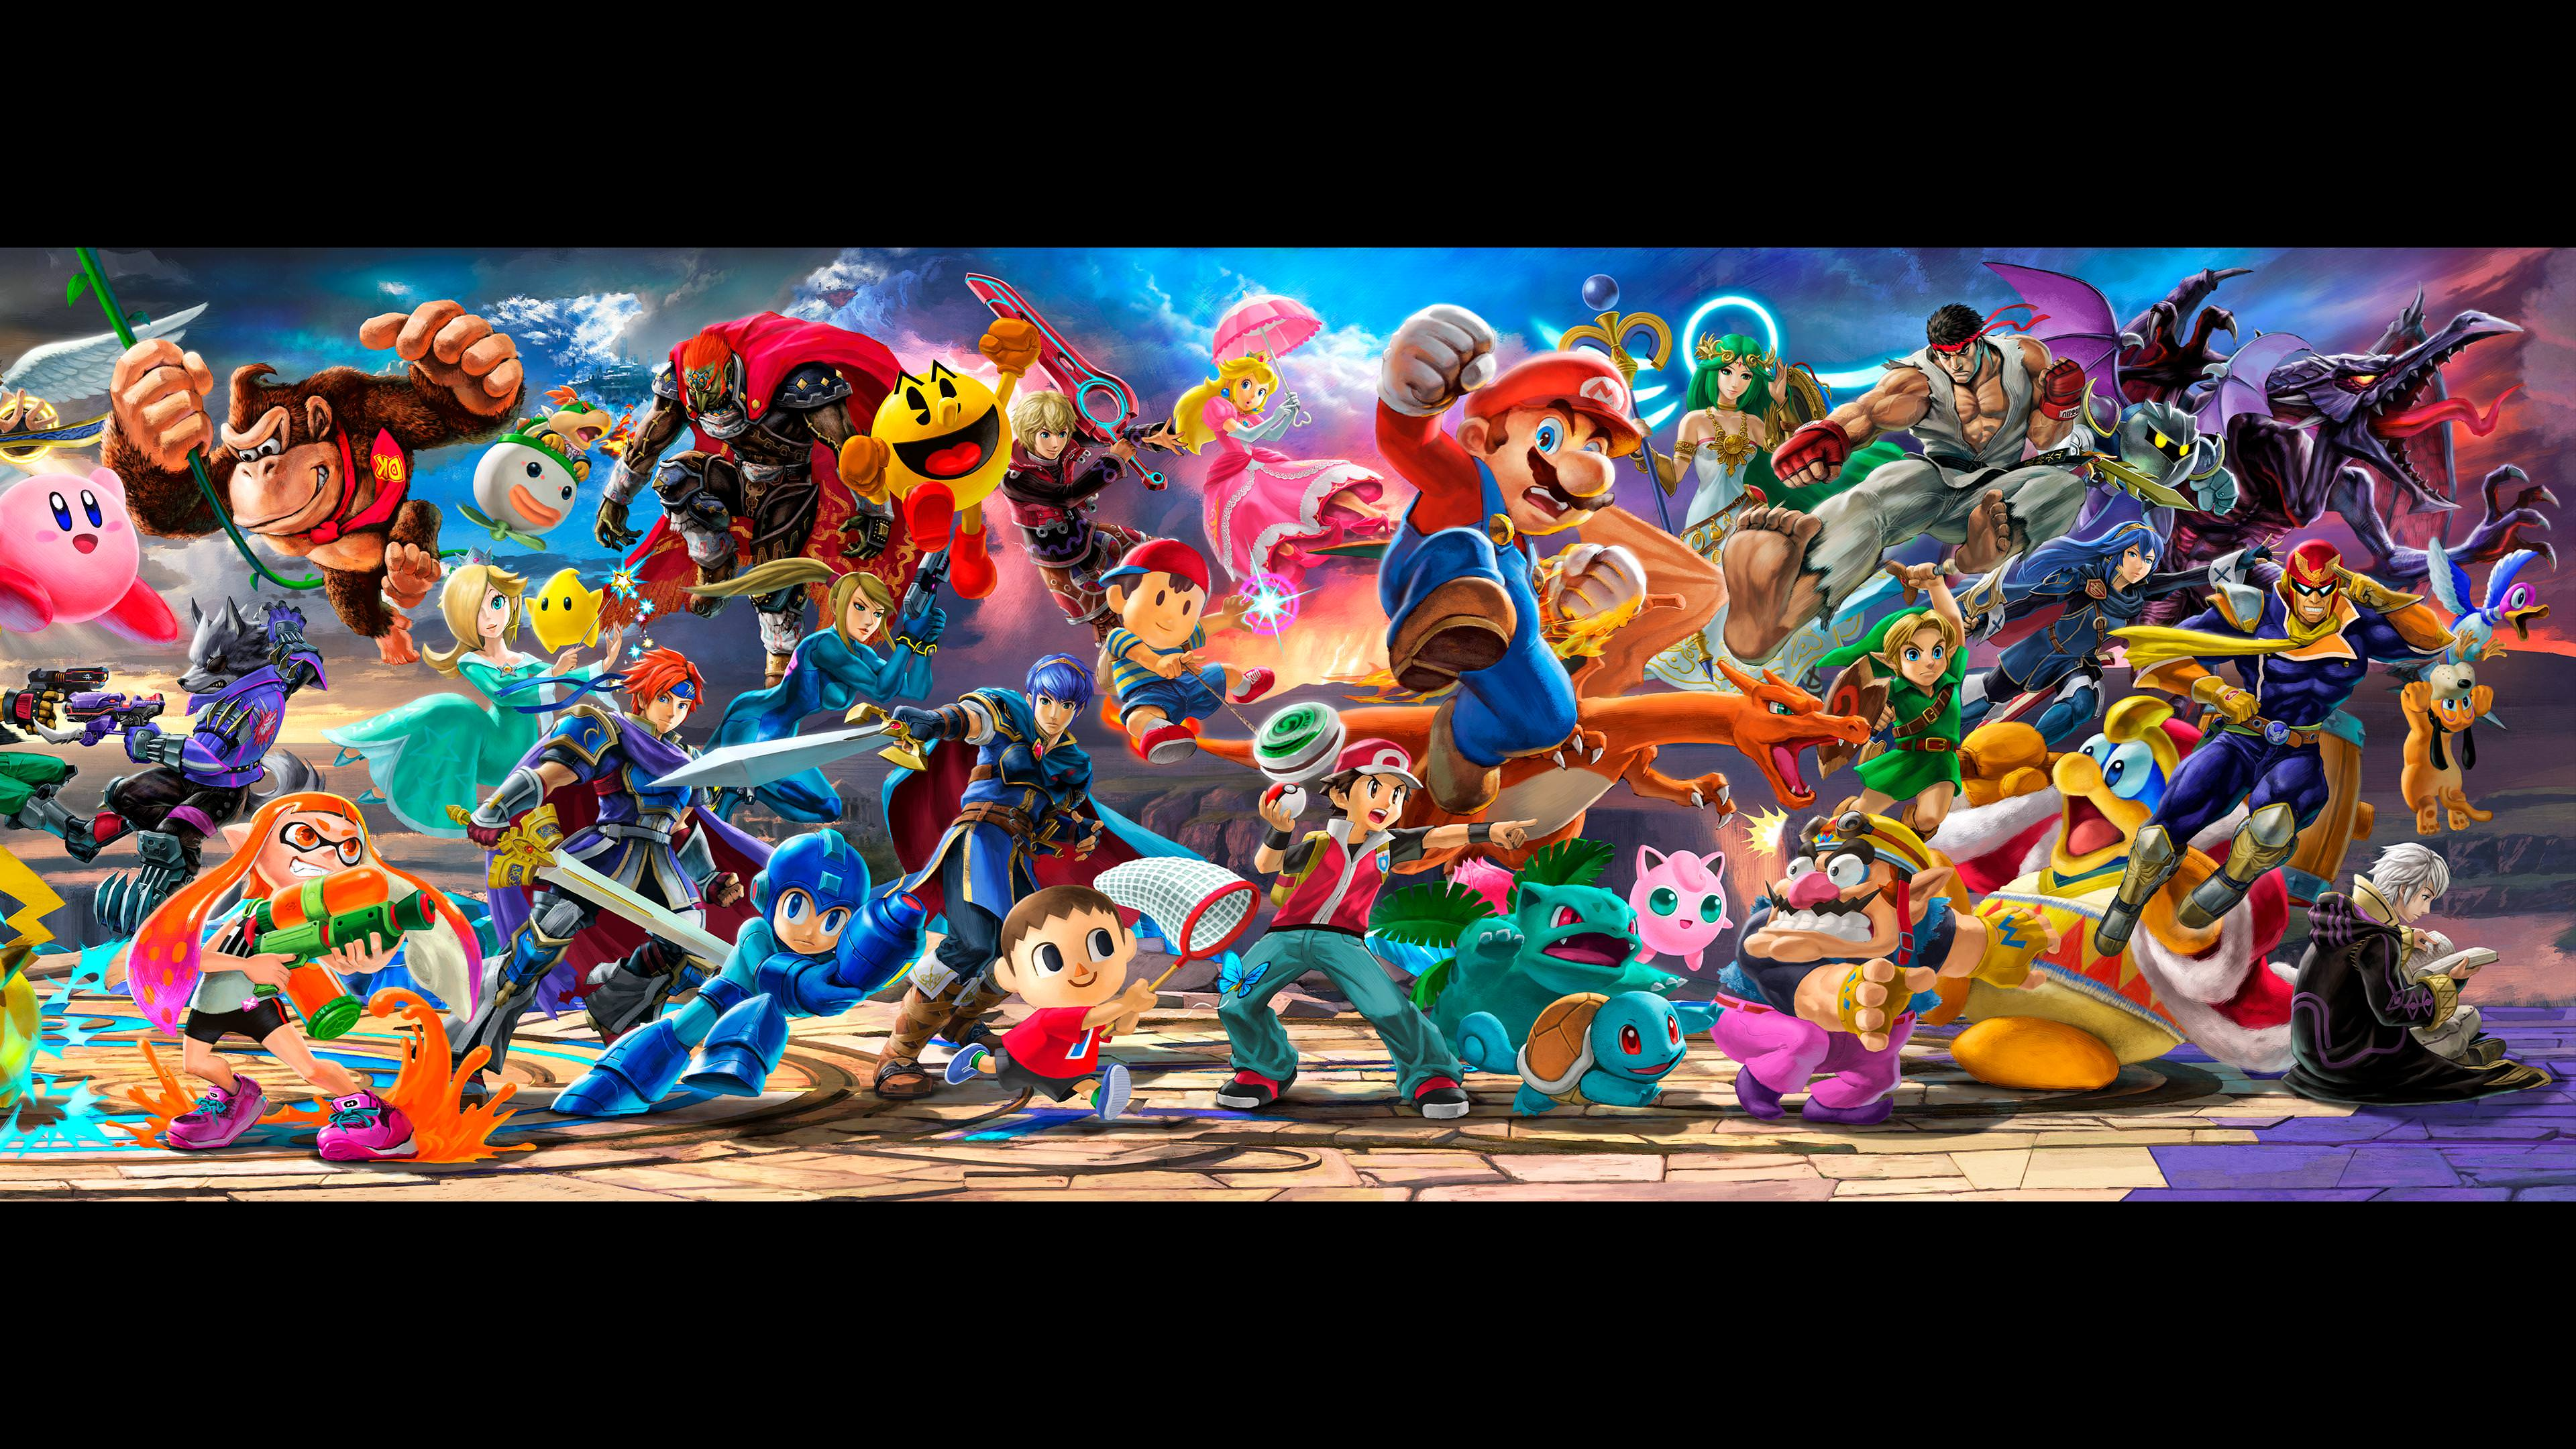 Super Smash Brothers 4 Wallpapers On Wallpaperdog